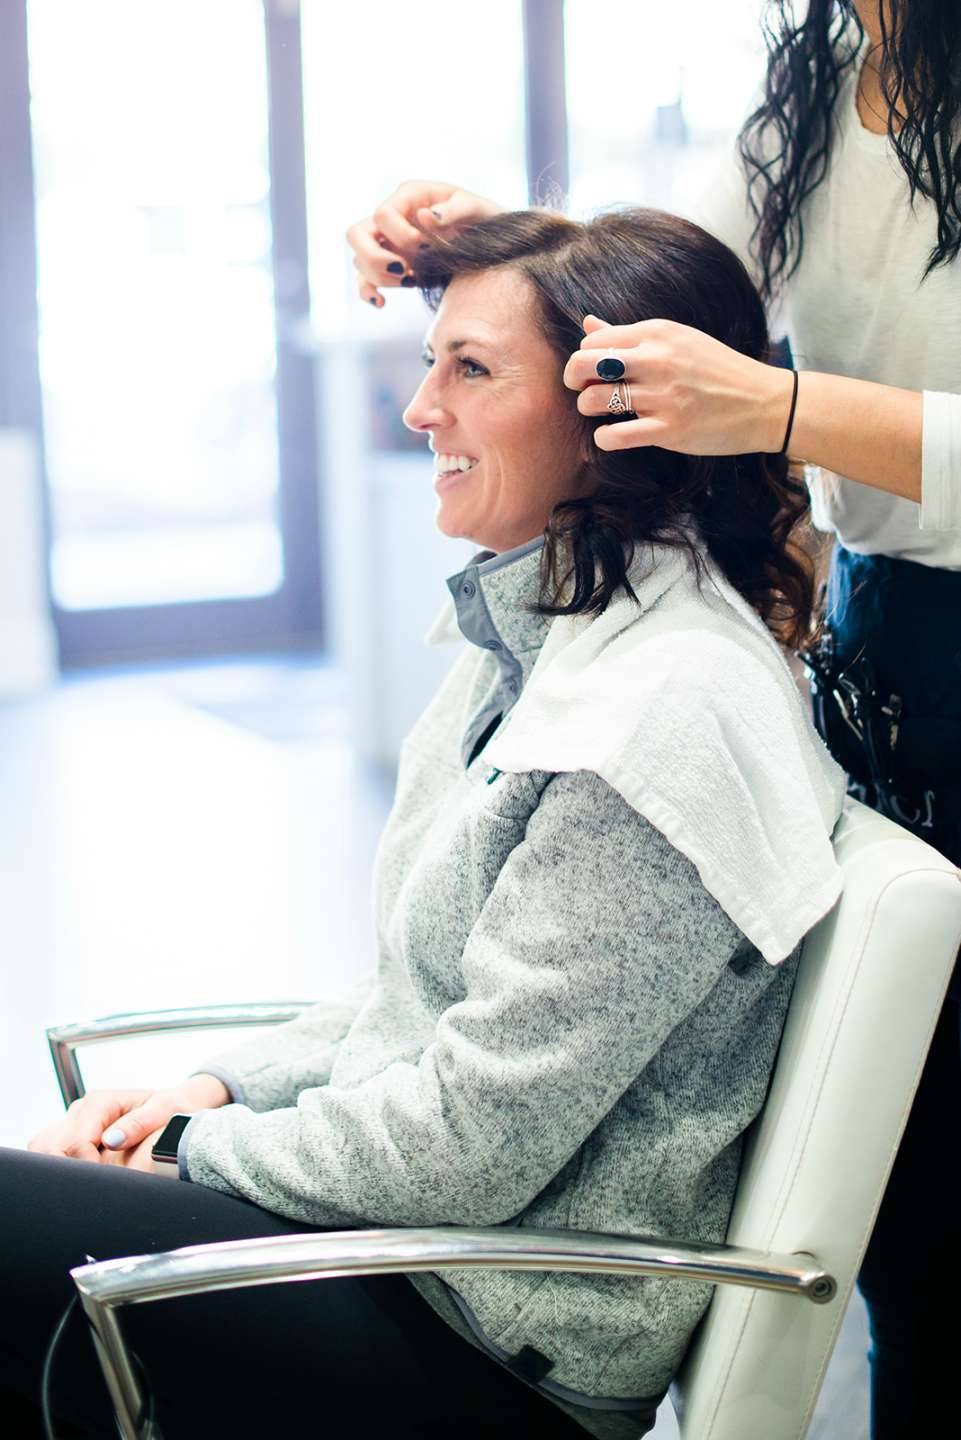 The Ultimate Girls' Day Out in Raleigh - I'm Fixin' To - @imfixintoblog | Girls Day Out In Raleigh by popular NC lifestyle blog, I'm Fixin' To: image of a woman getting her hair done at a hair salon.